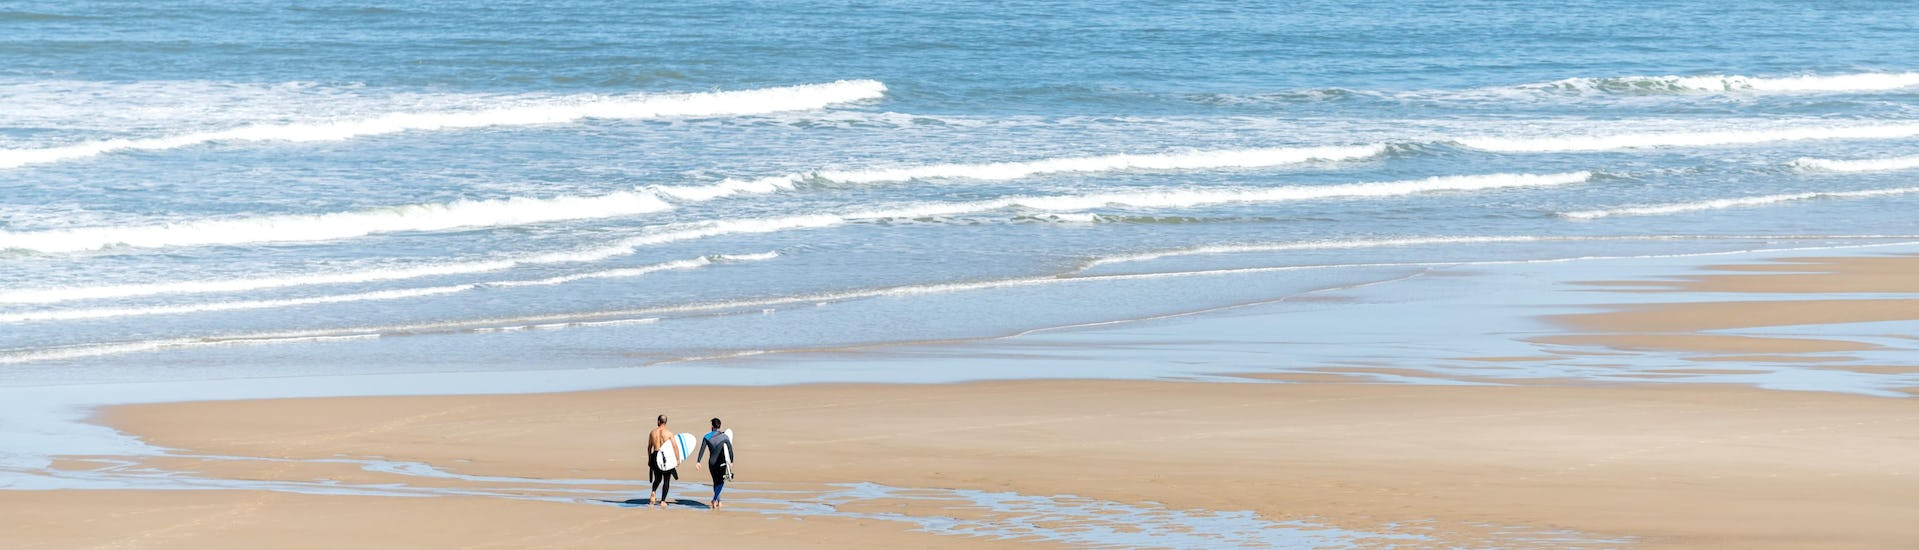 Two men are walking on the Plage Centrale of Lacanau with their surfboard under their arm, where many surfing lessons take place.